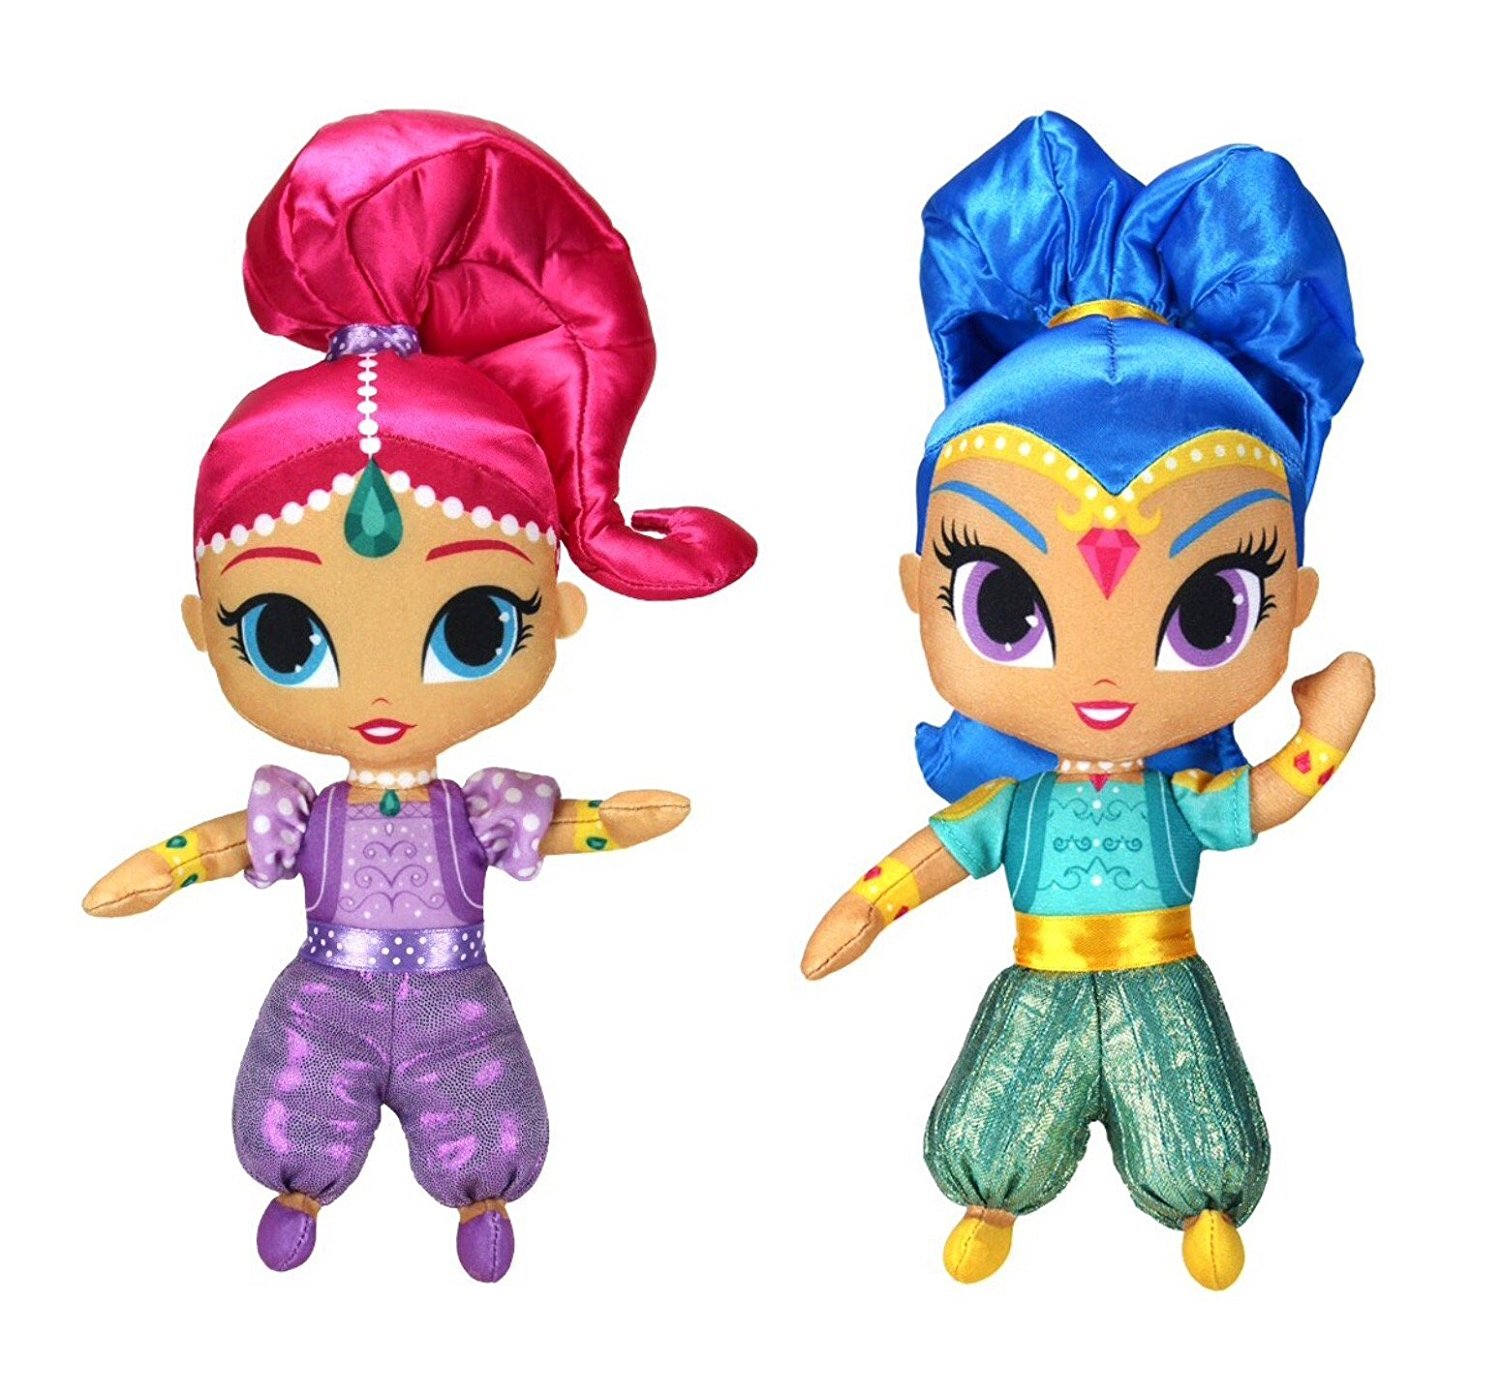 Set of 2: Fisher-Price 6 inch Shimmer and Shine Mini Plush - SHIMMER & SHINE